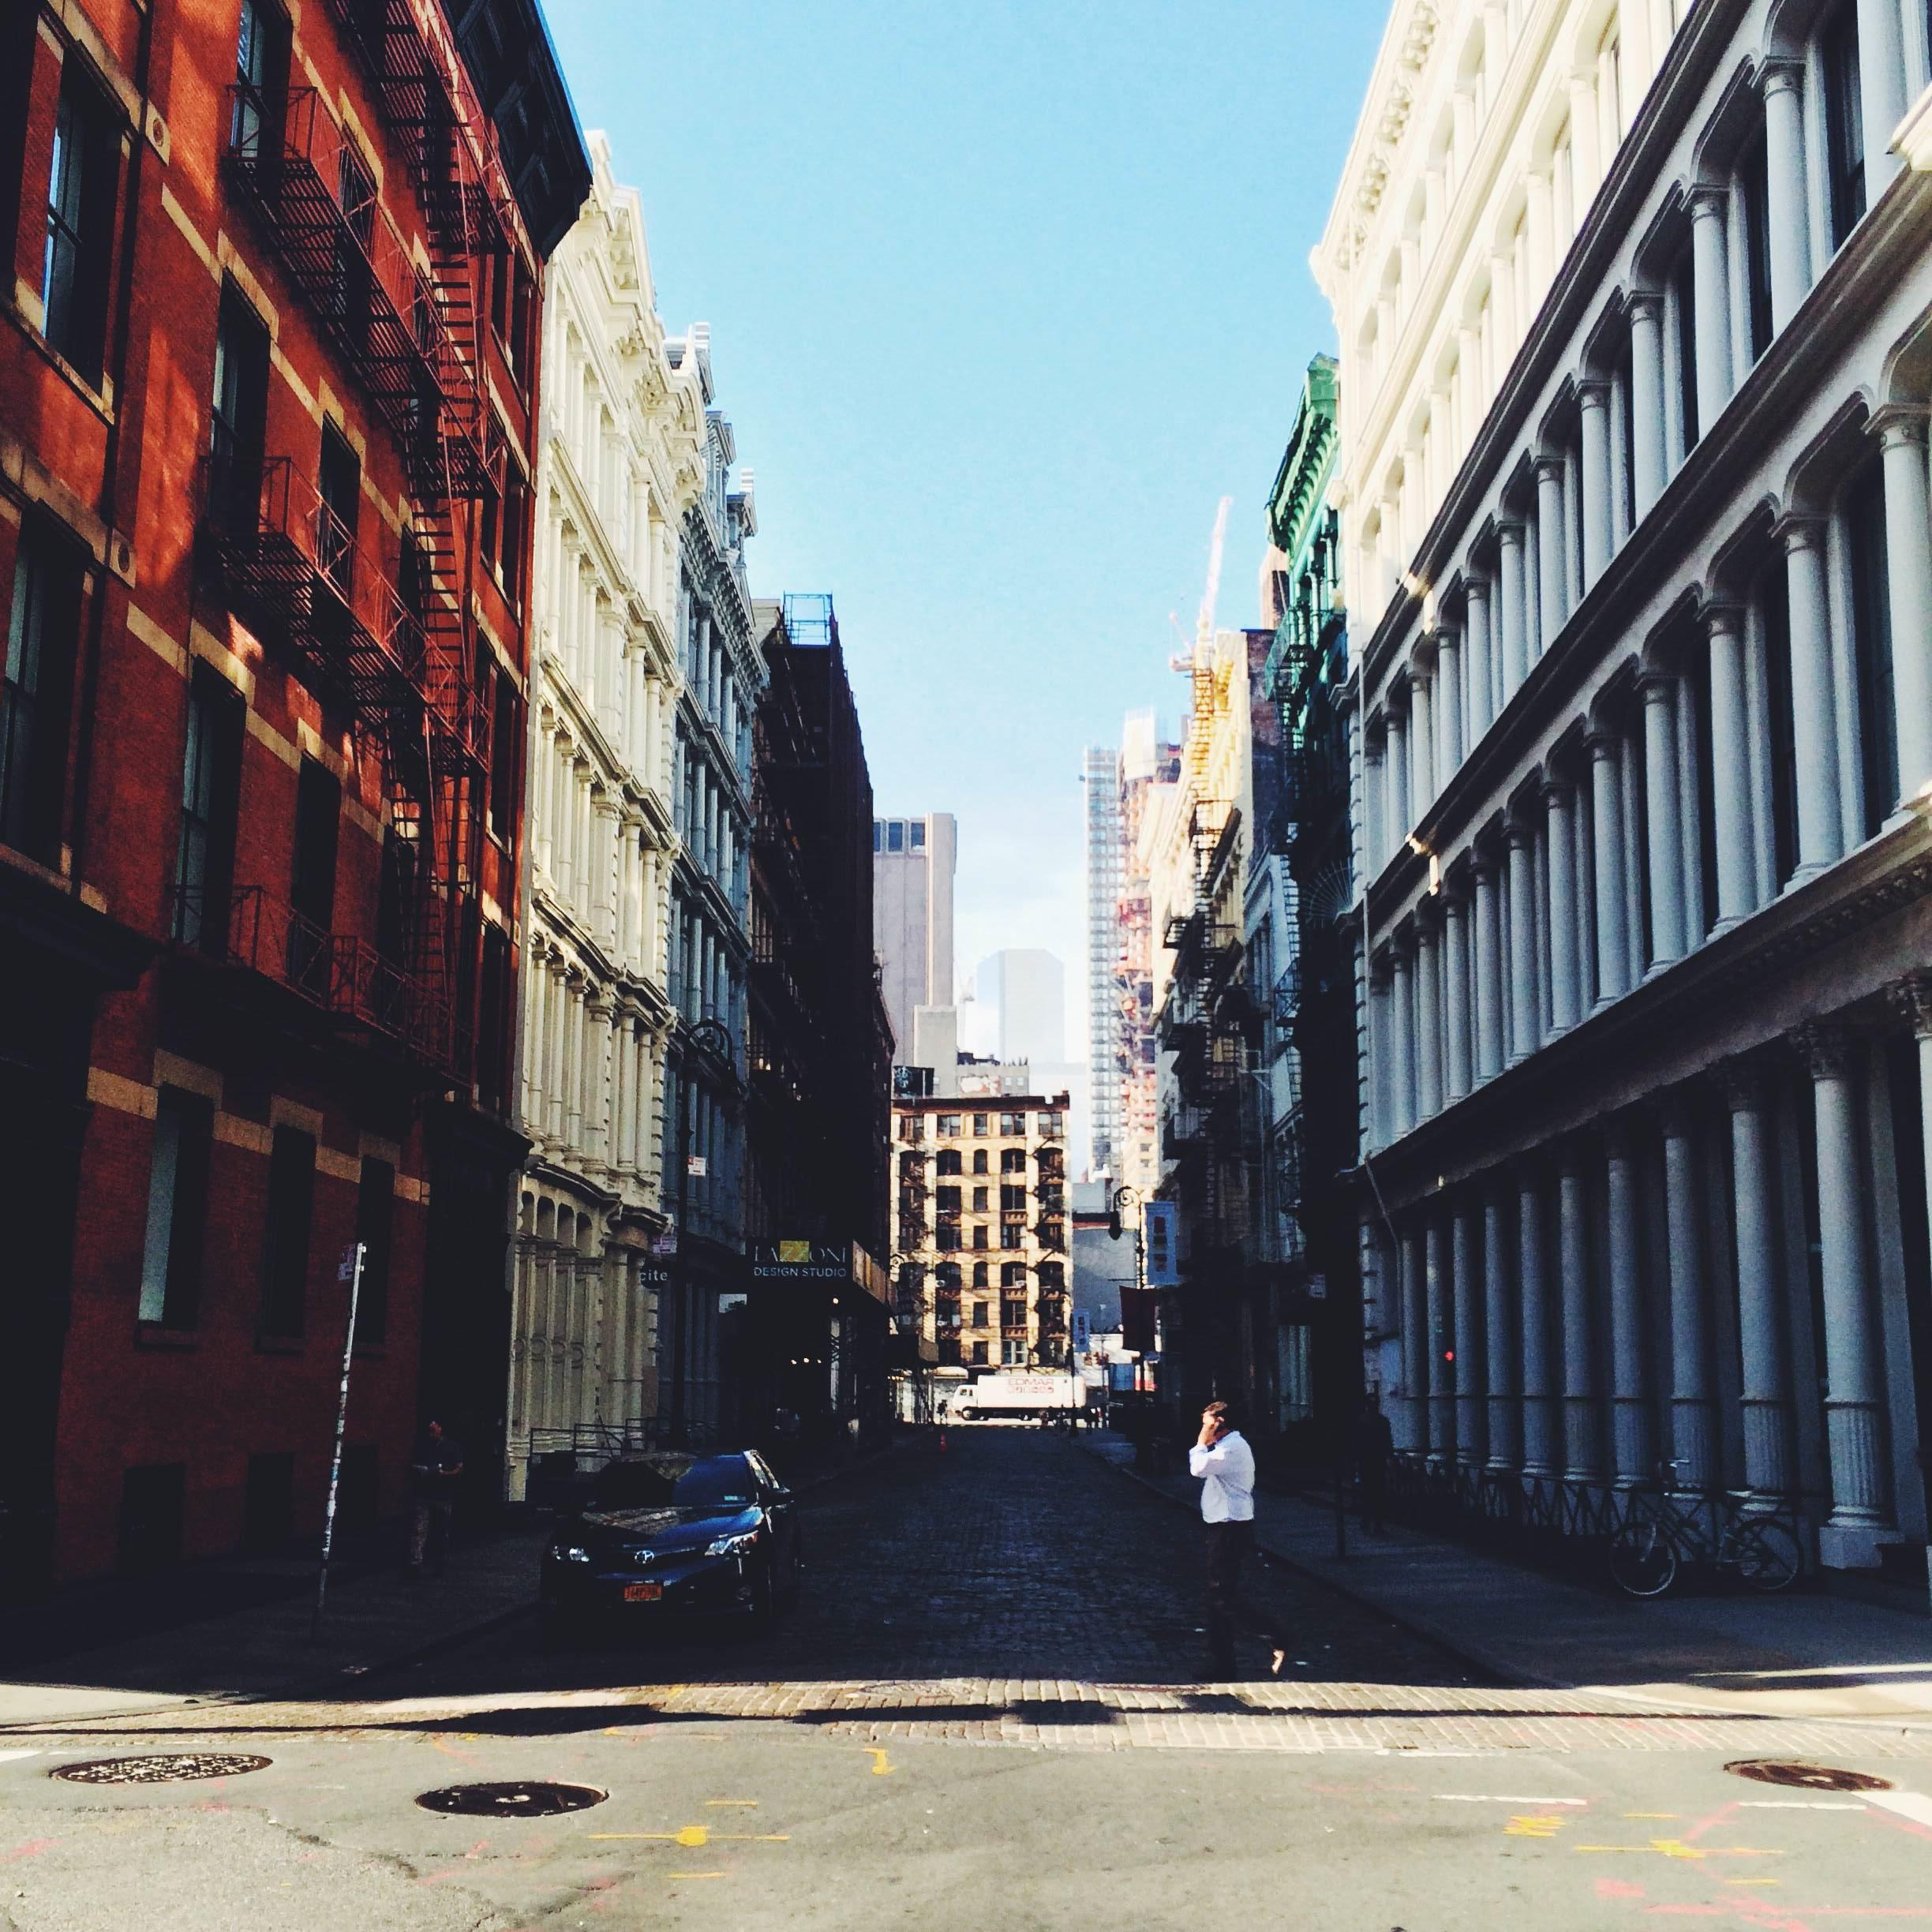 SoHo, New York in September - image 3 - student project